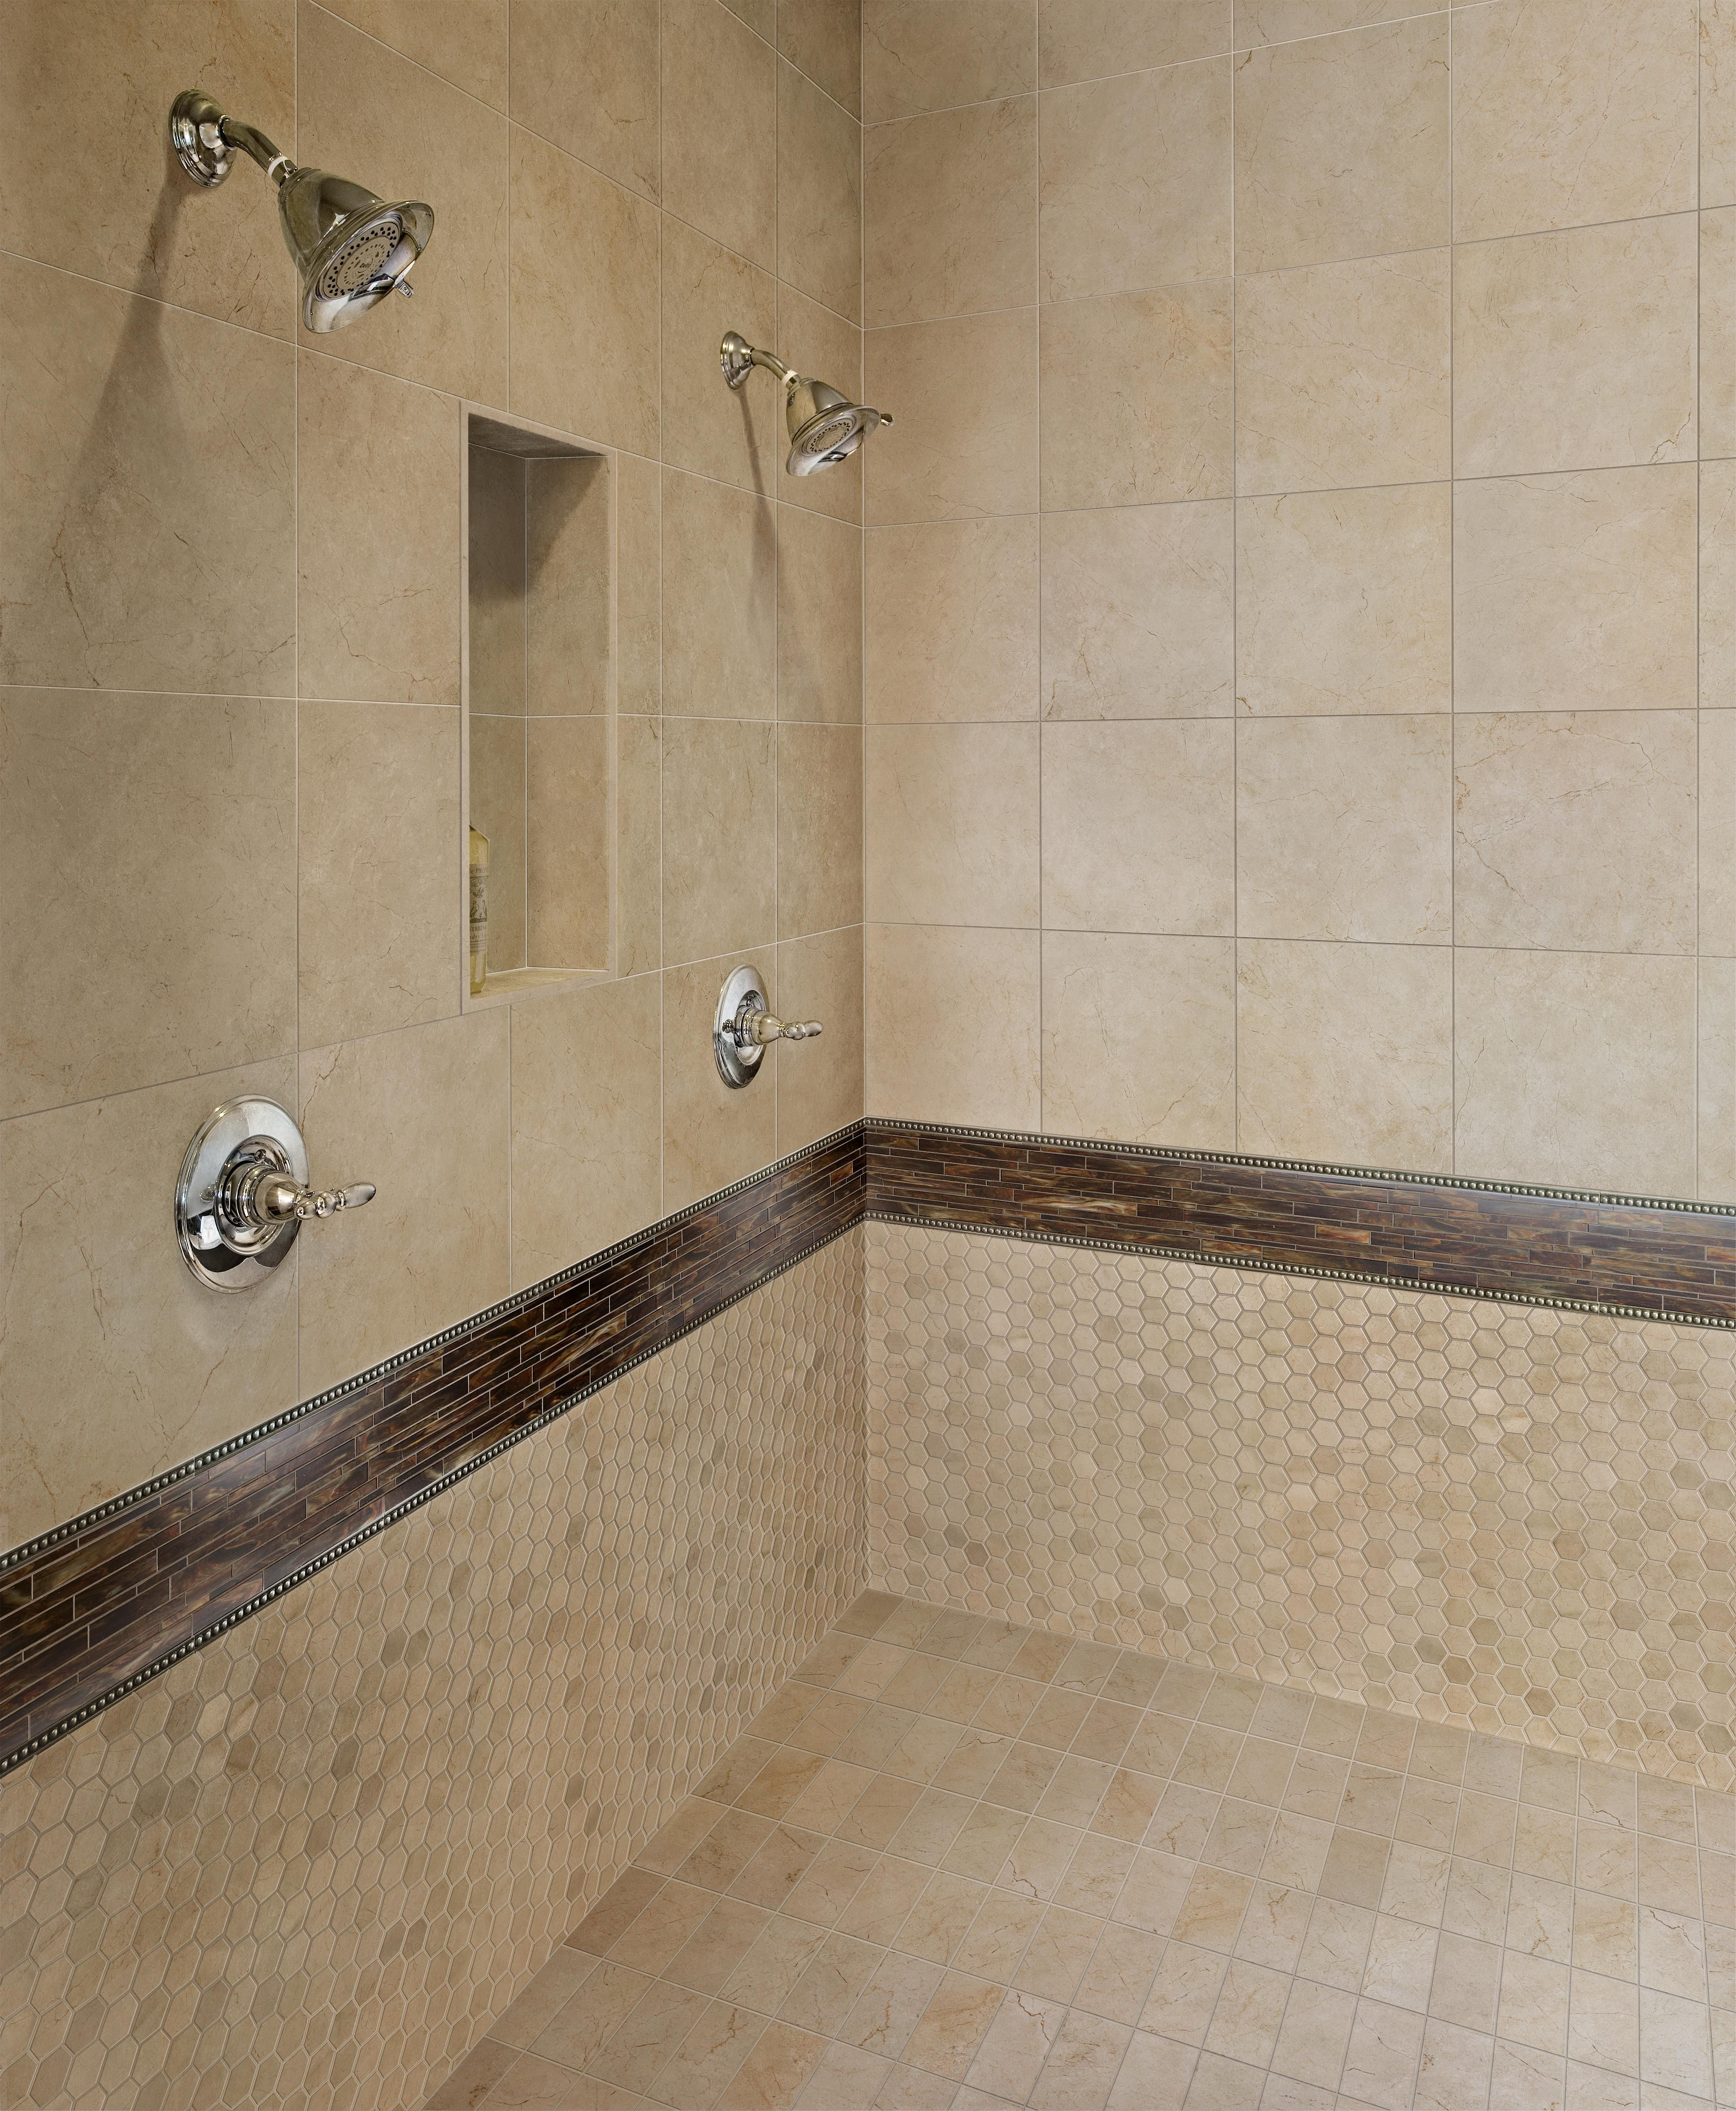 new bathroom images%0A Classic beauty never goes out of style  and Marazzi u    s new TIMELESS  COLLECTION provides a fresh